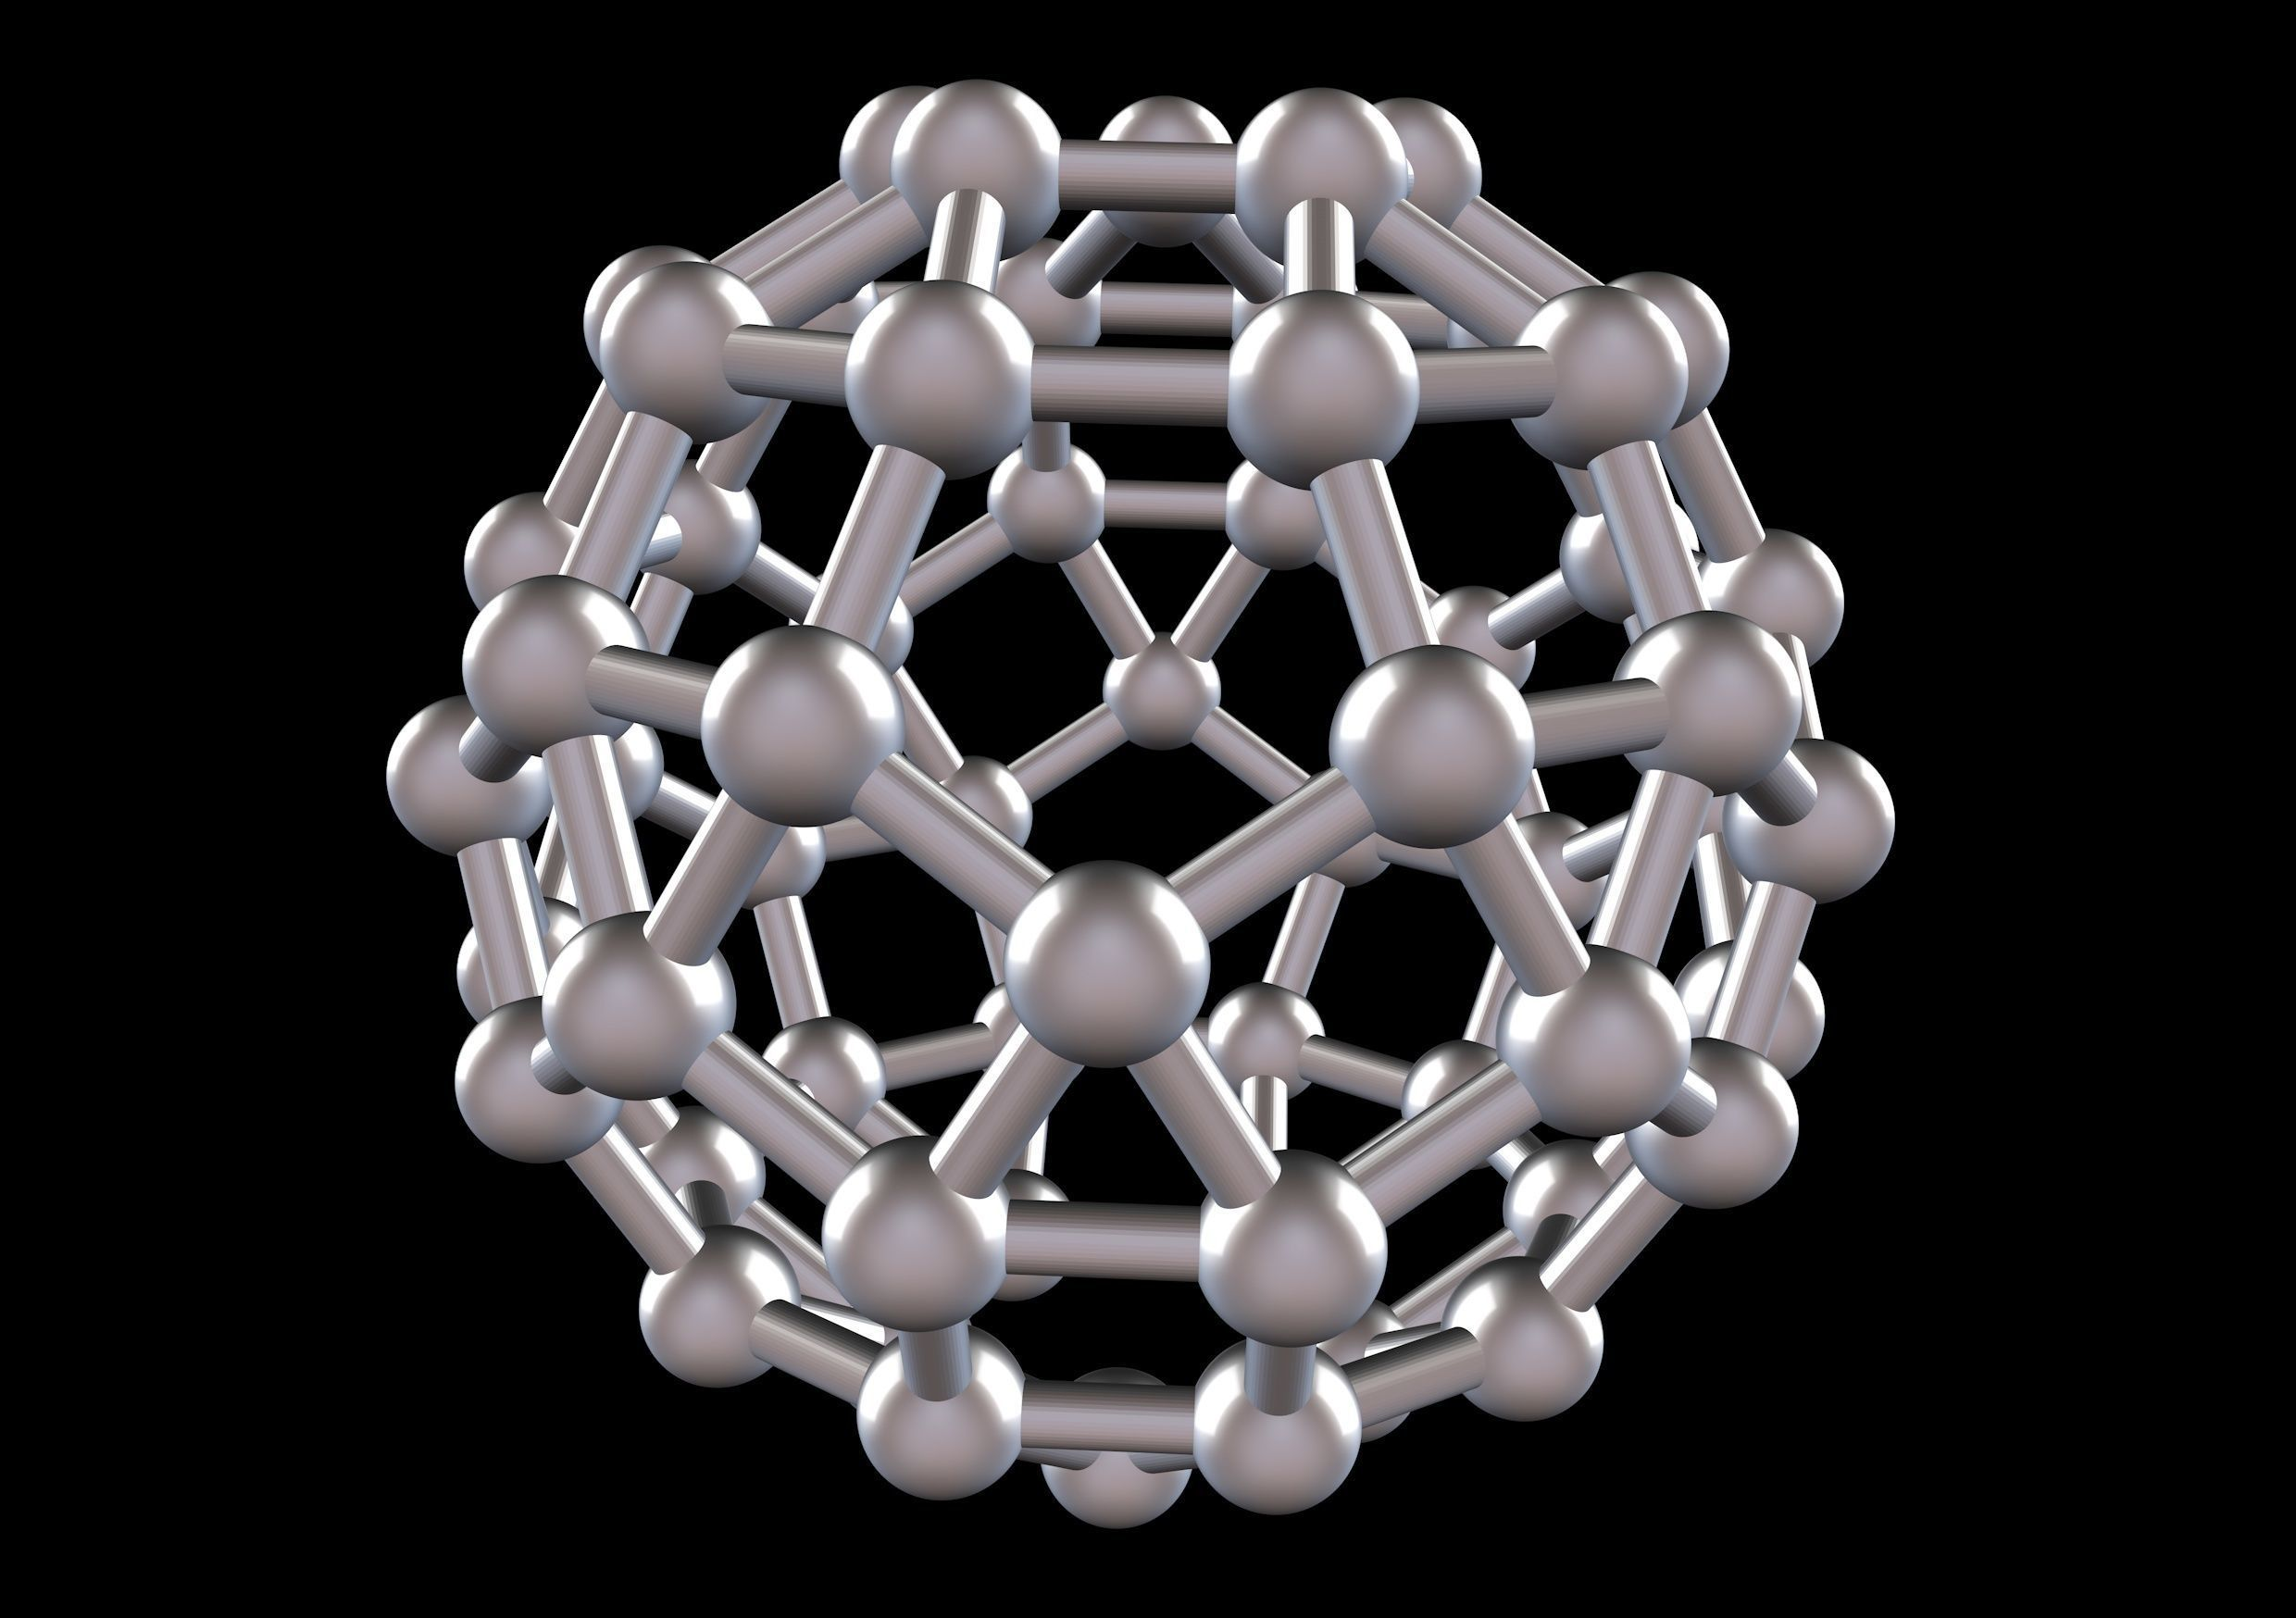 030 Mathart-Archimedean Solids-Small Rhombicosidodecahedron 03